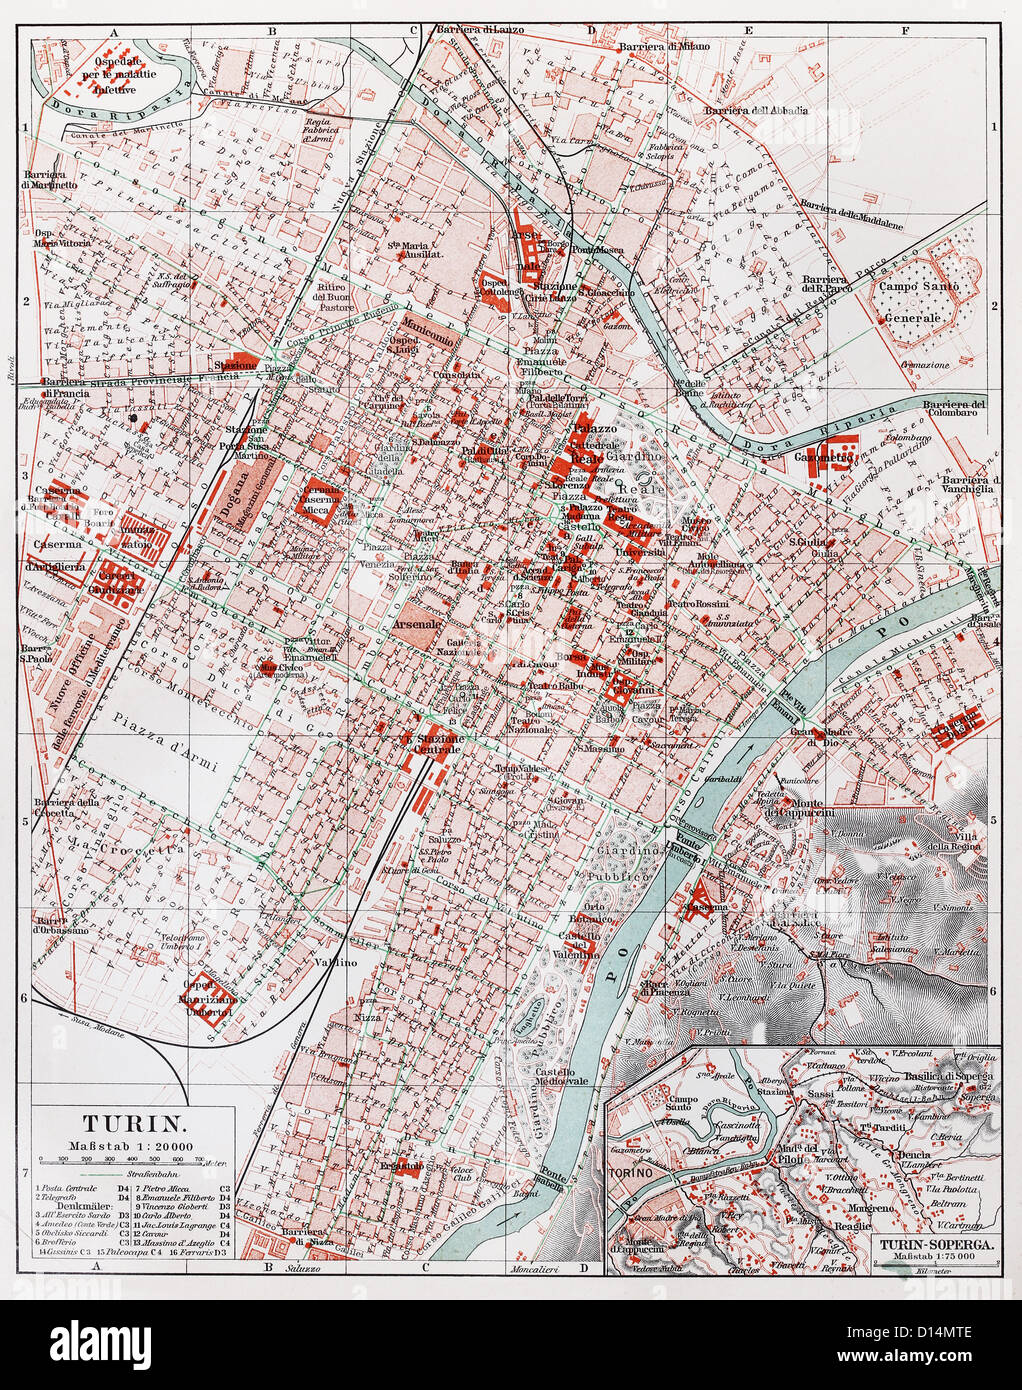 Vintage map of Turin from the end of 19th century - Stock Image